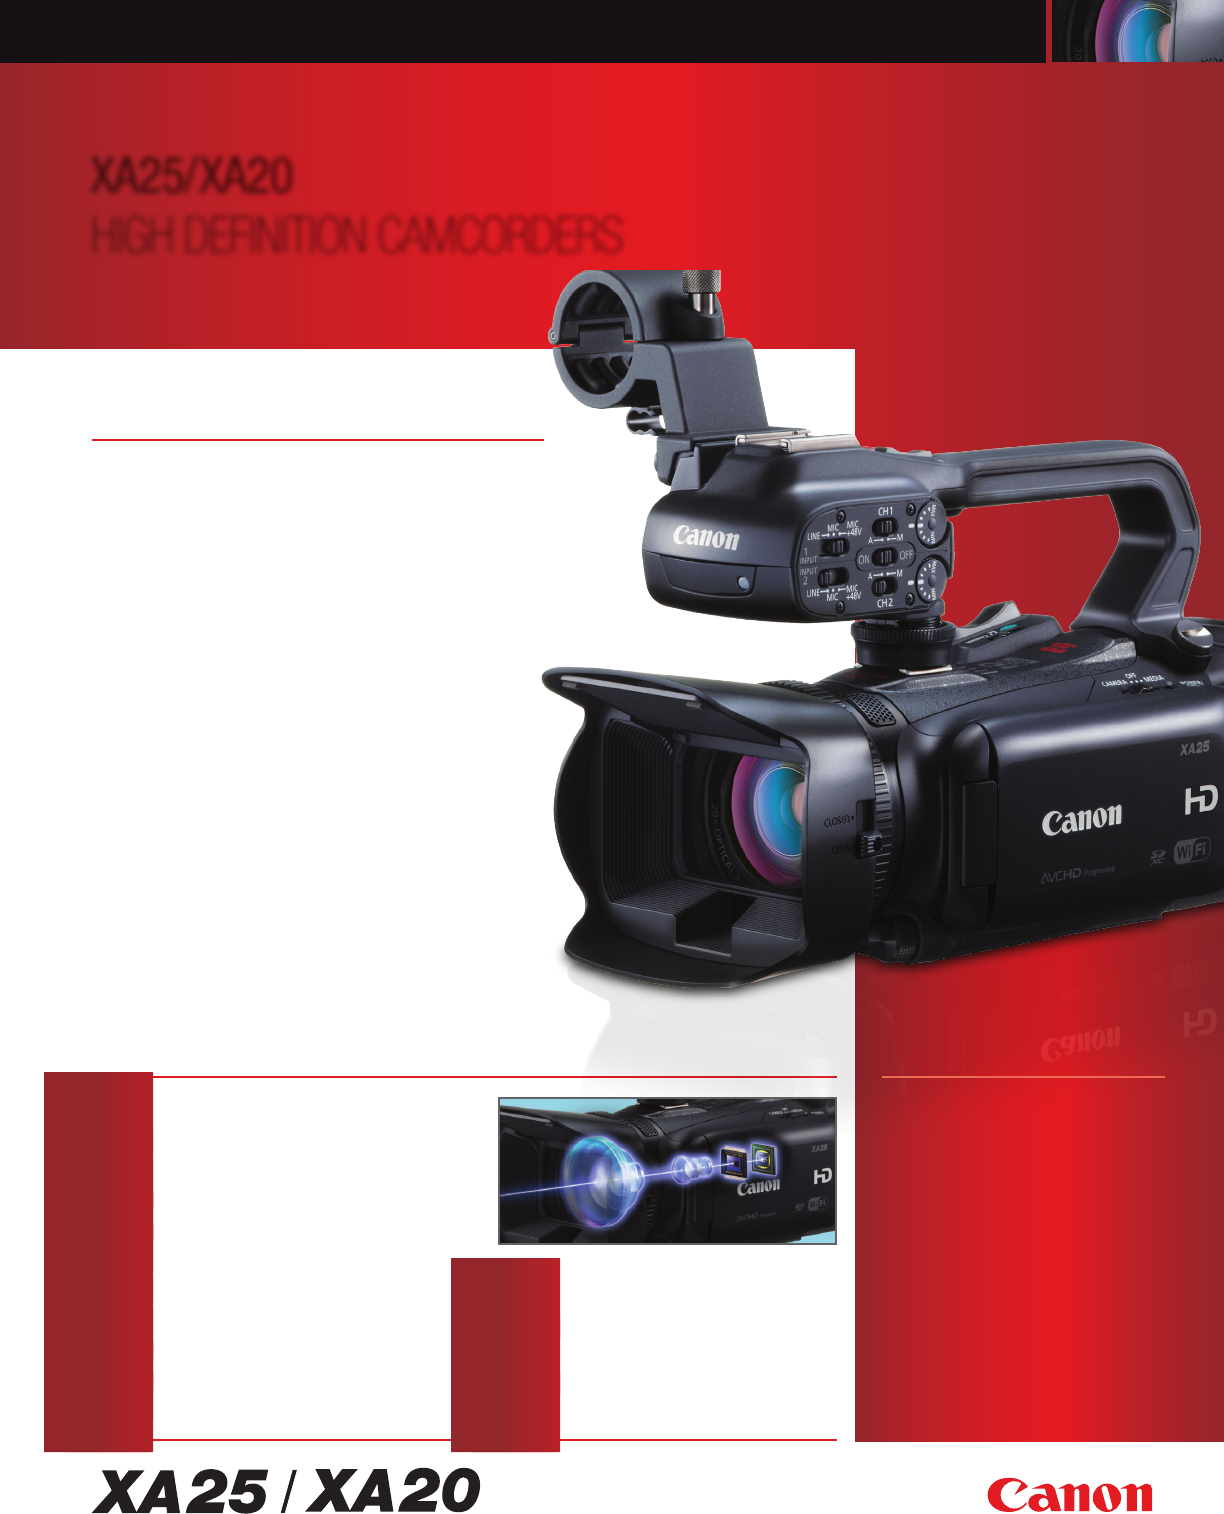 canon camcorder high definition camcorder user guide manualsonline com rh camera manualsonline com action camcorder user manual car camcorder user manual